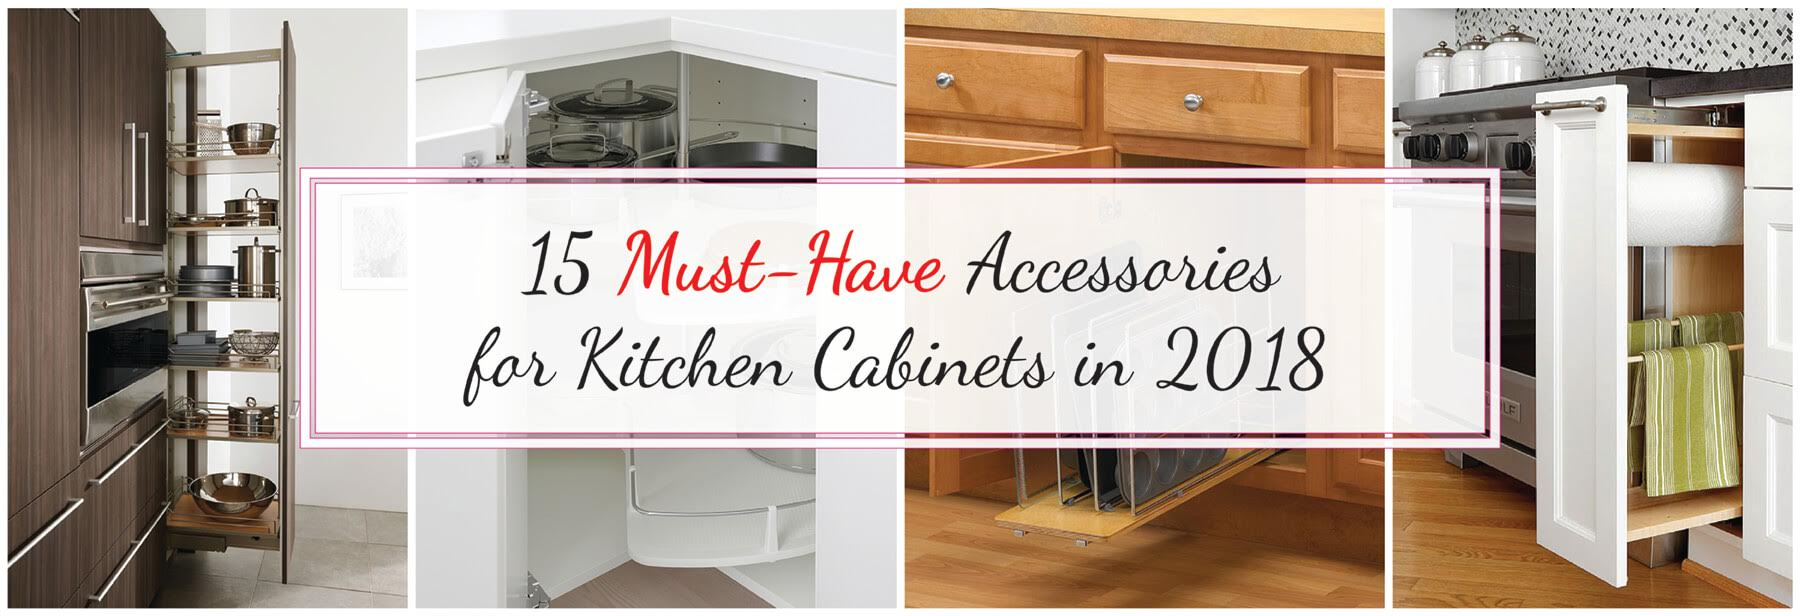 Best Online Cabinets